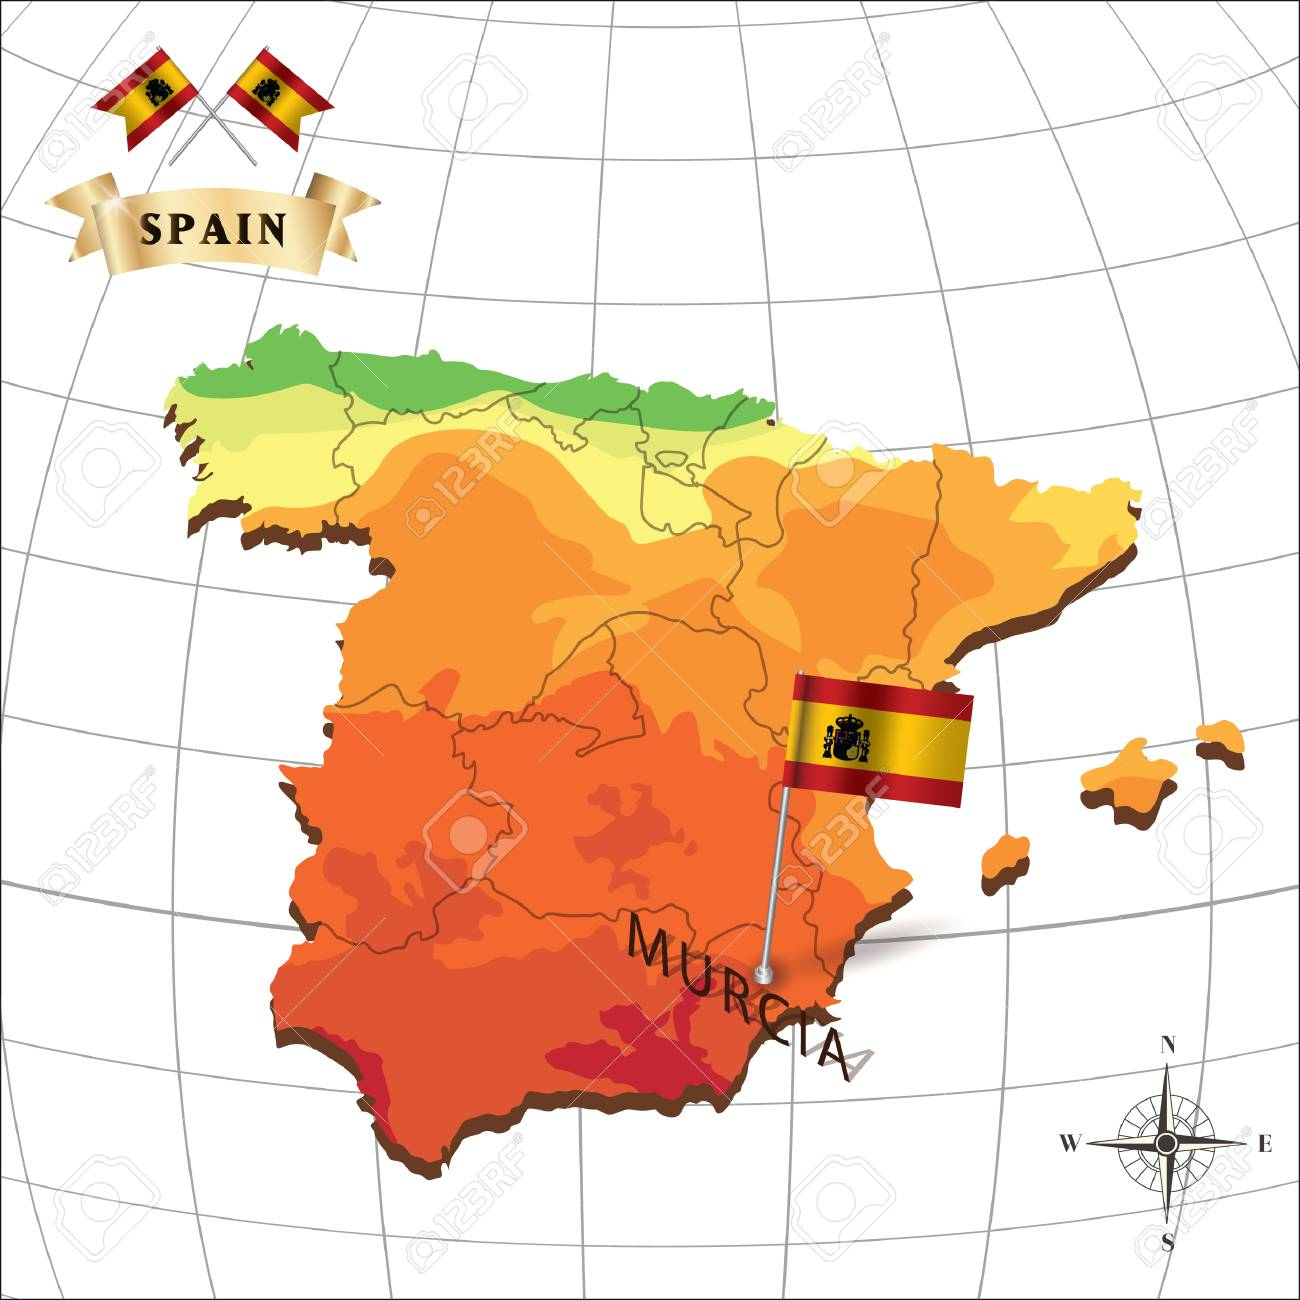 Map Of Spain Murcia.Map Of Spain With Murcia